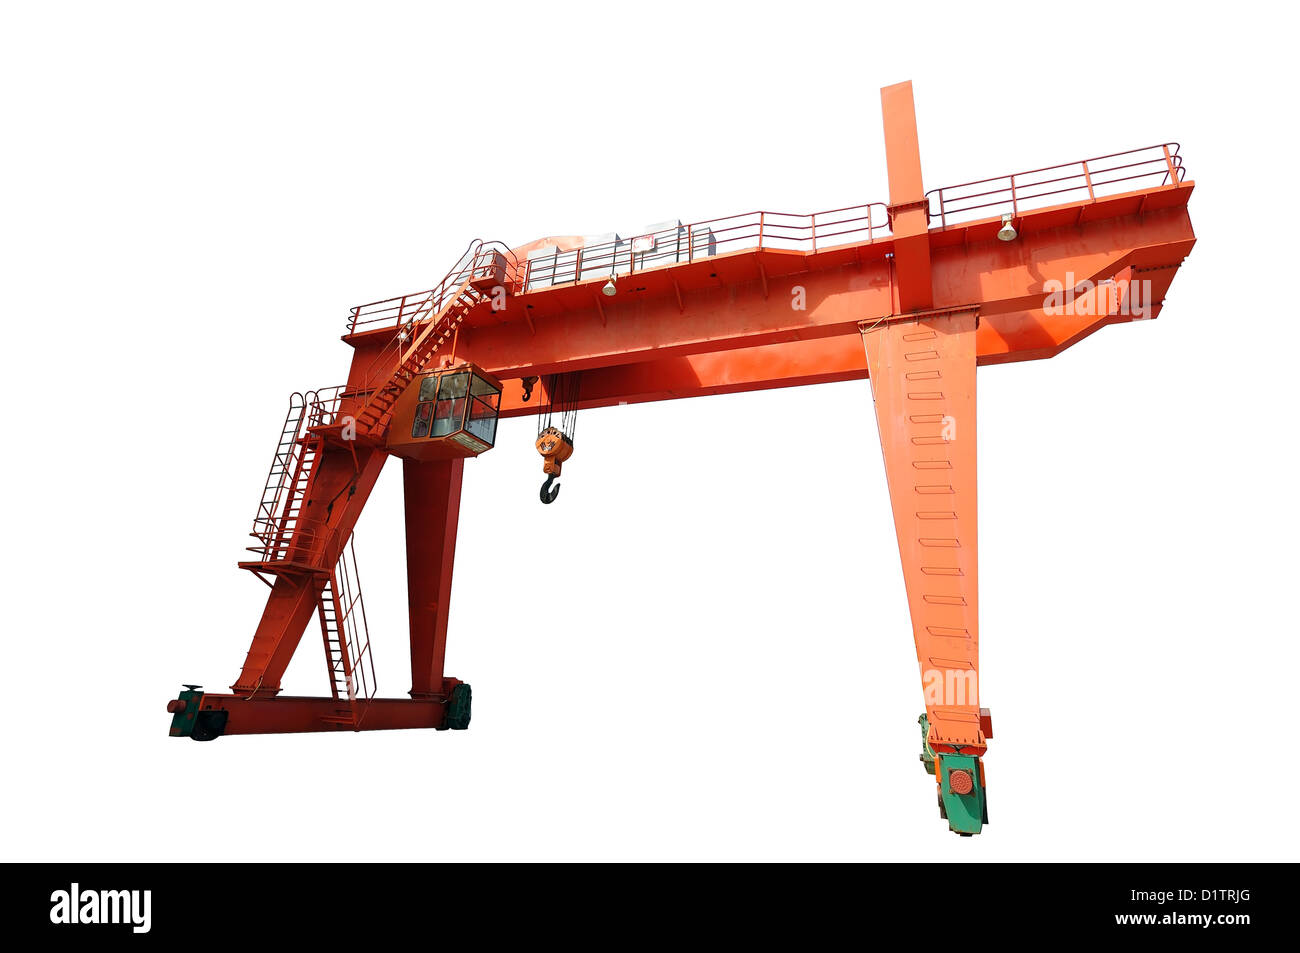 Tower crane in the factory workshop. - Stock Image